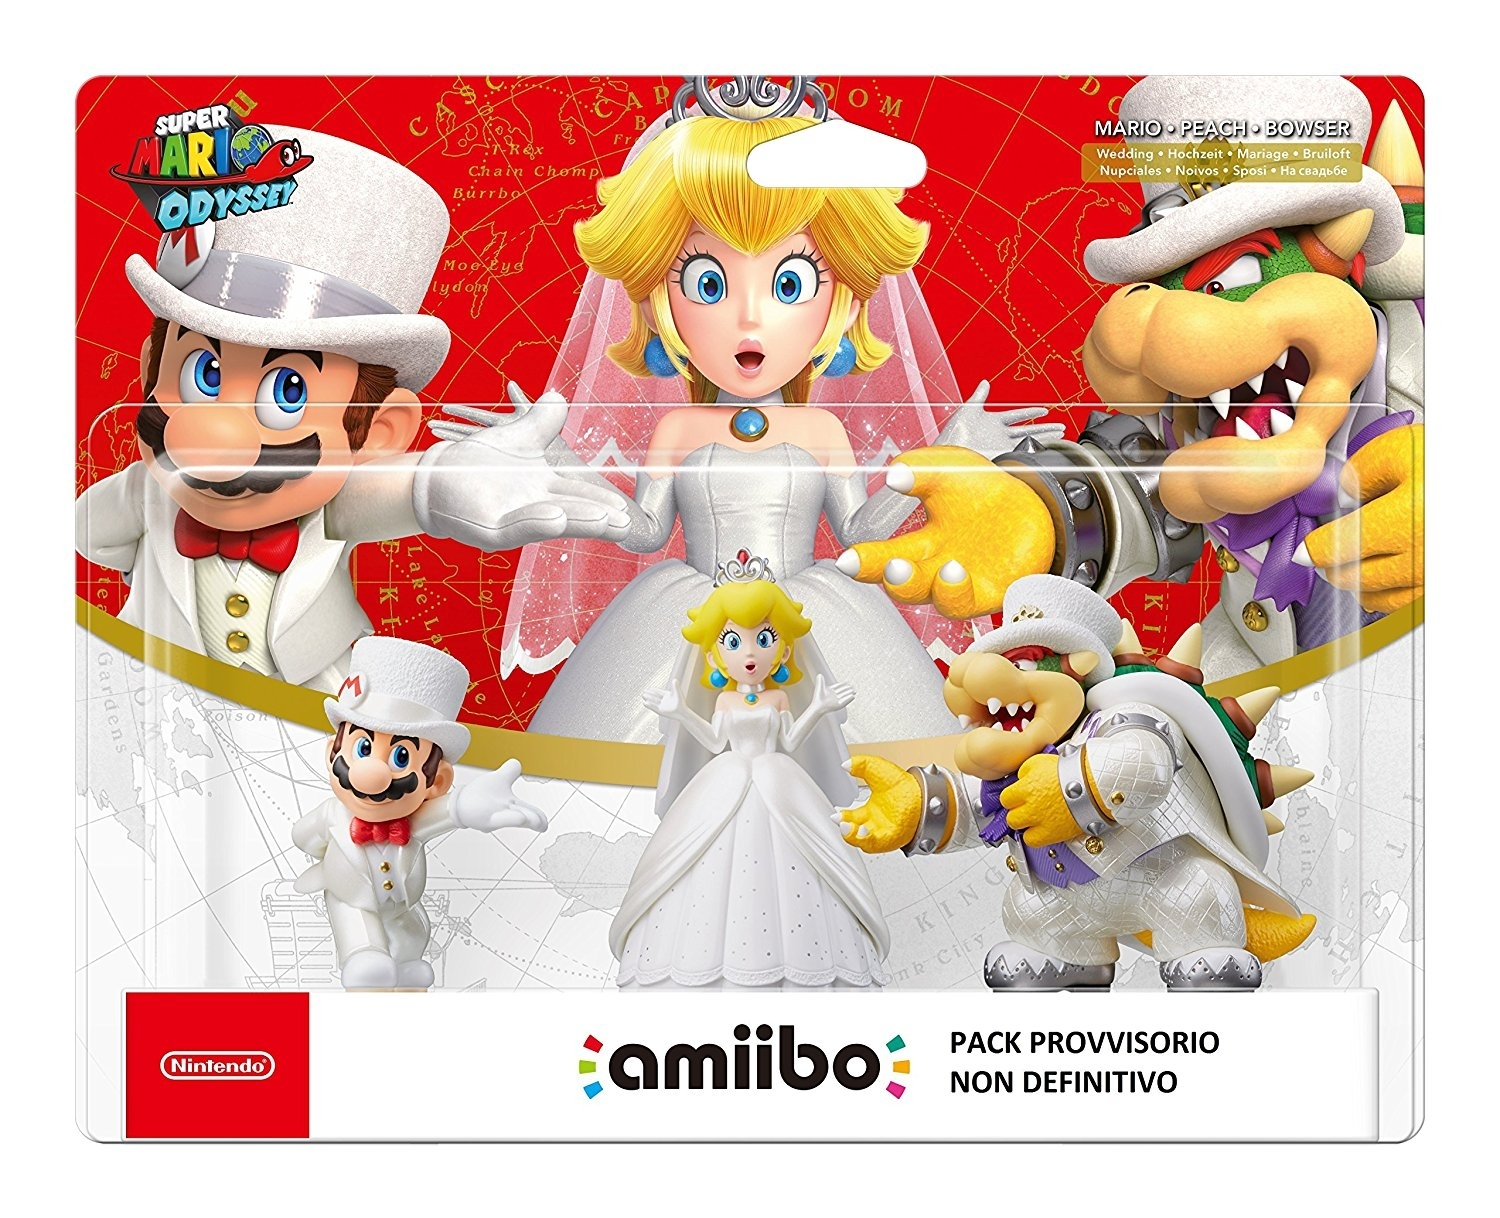 Figurka Amiibo Wedding Triple Pack Super Mario Odyssey  (WiiU, 3DS,2DS, Nintendo Switch)